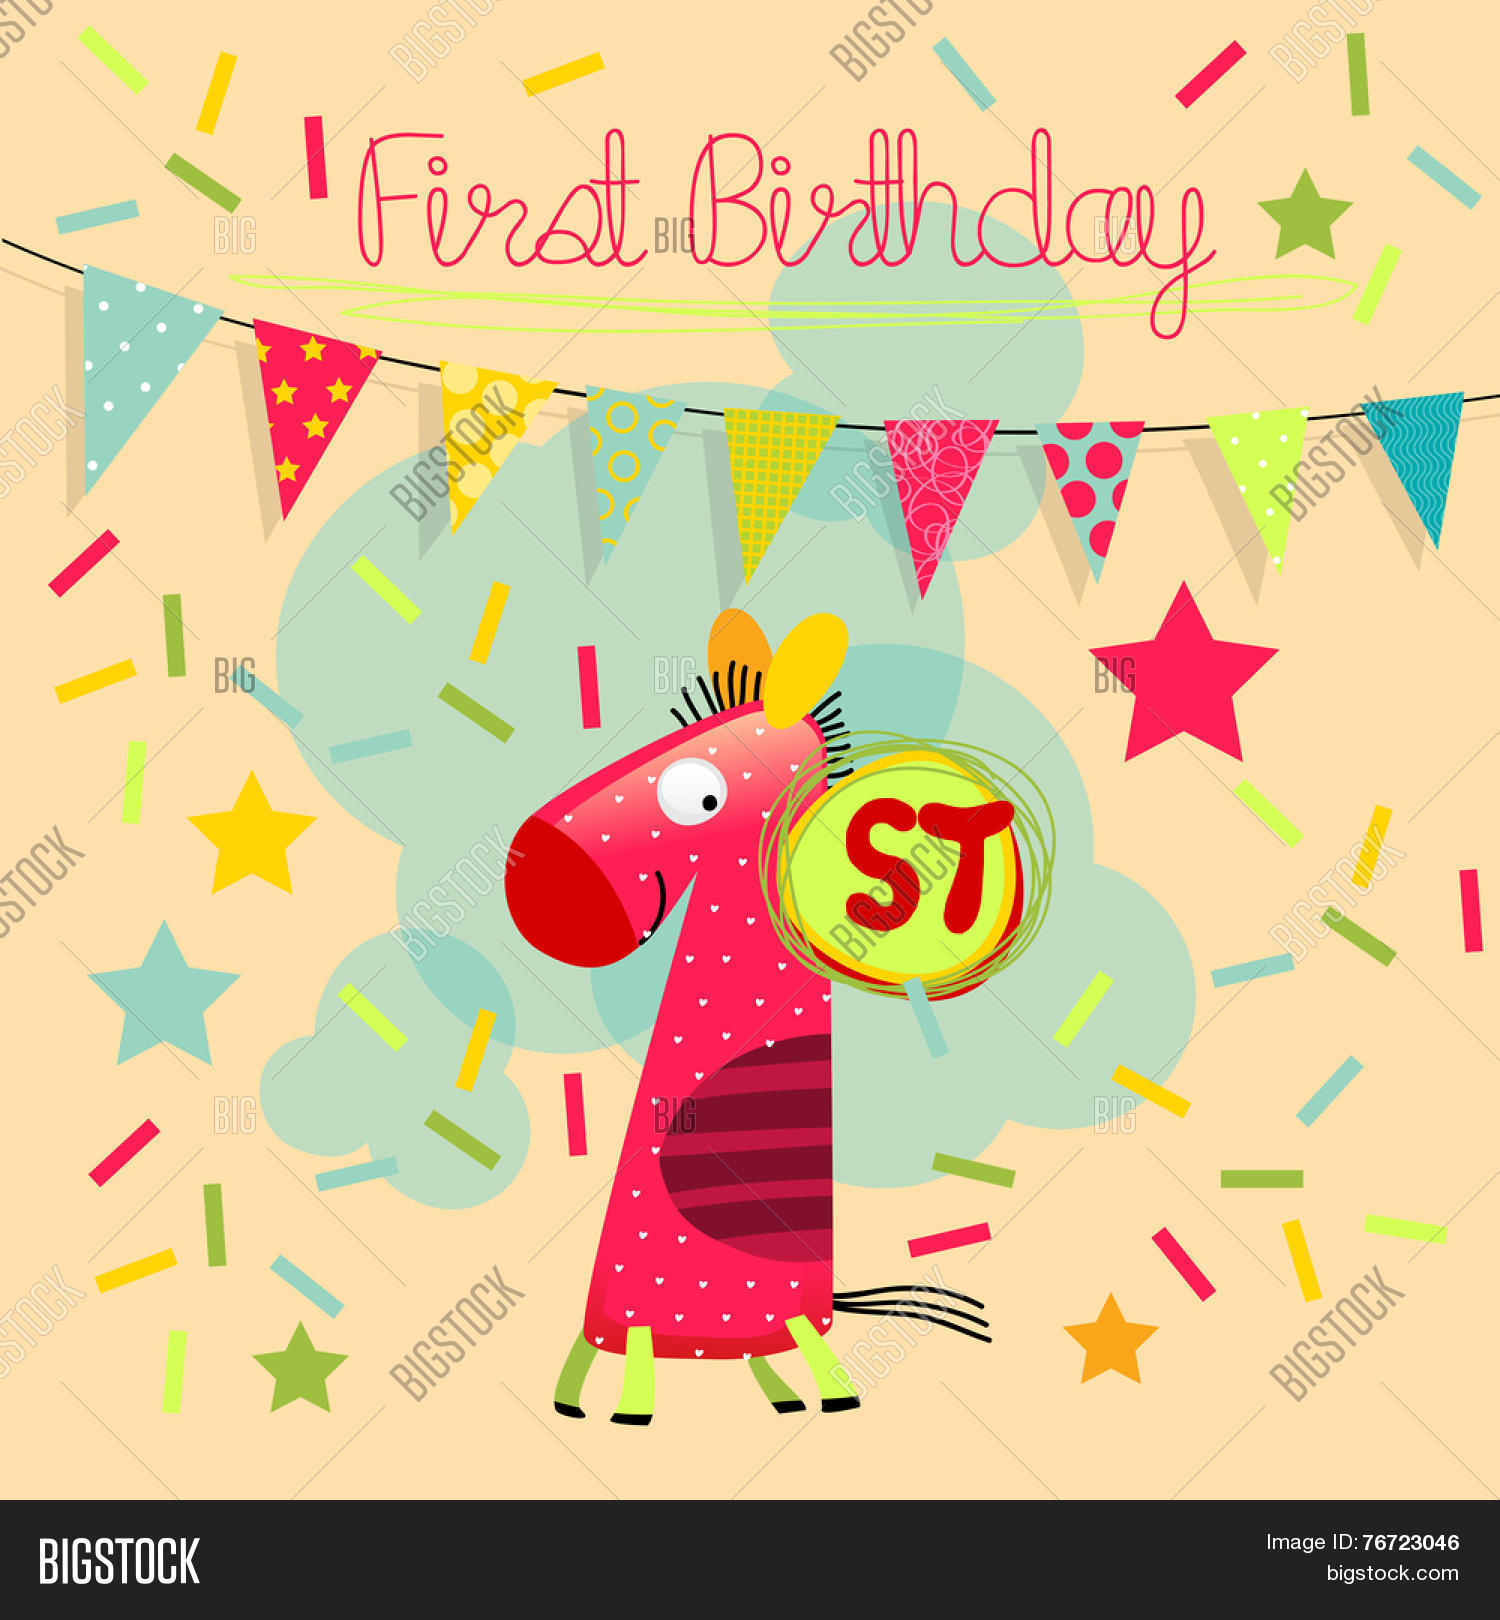 First birthday vector photo free trial bigstock first birthday vector happy birthday greeting card birthday invitation anniversary celebration greeting card m4hsunfo